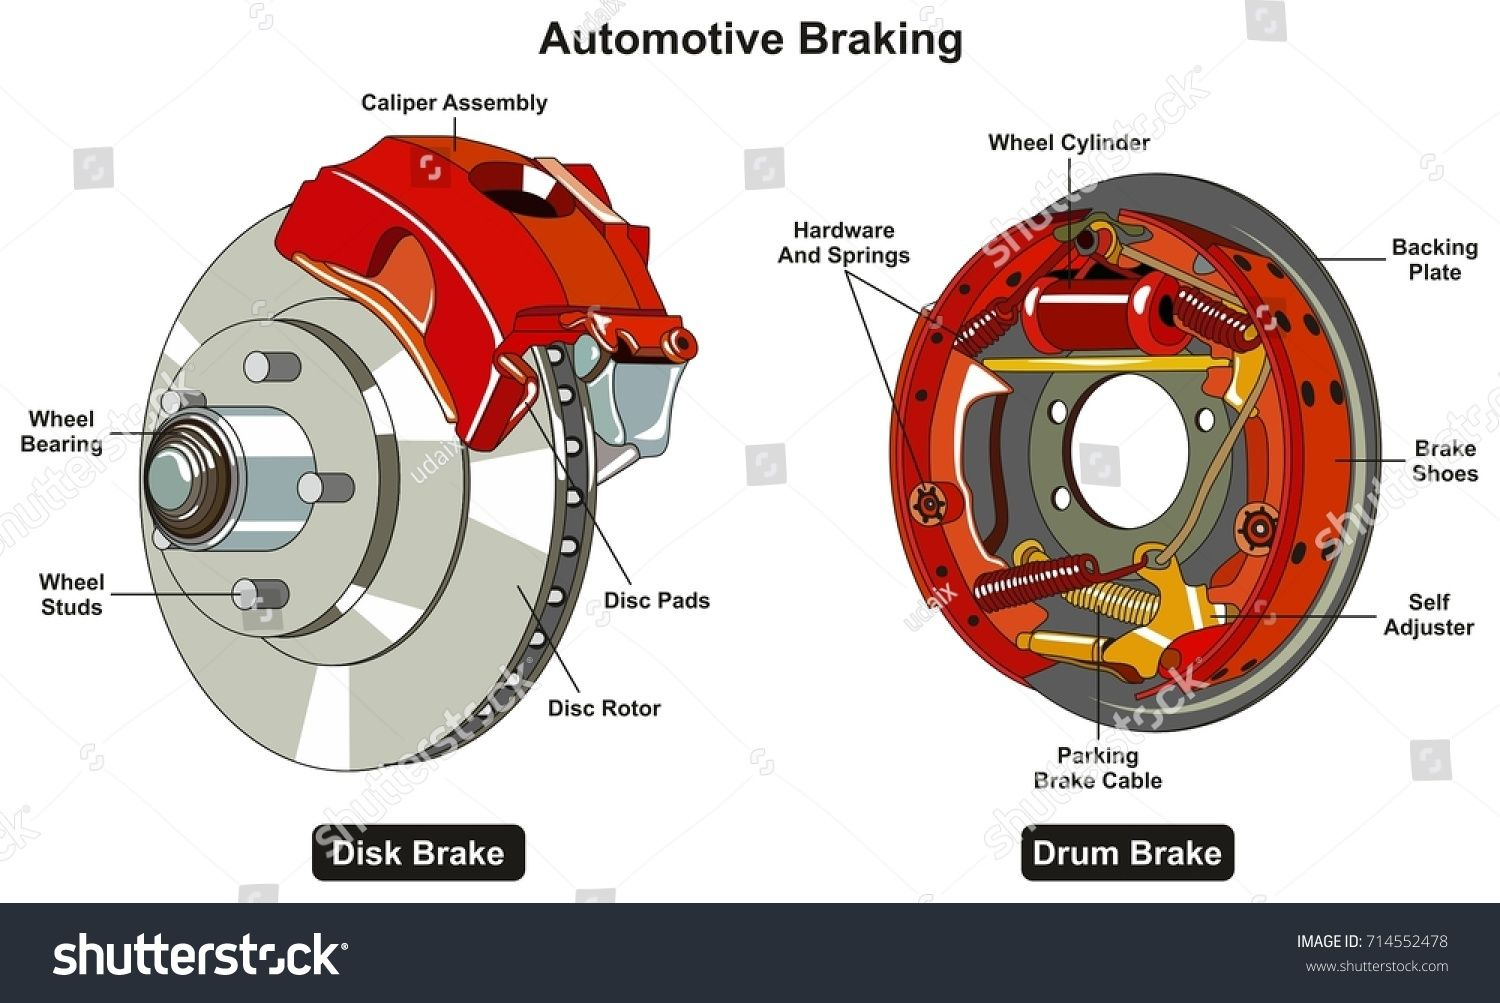 hight resolution of common automotive braking system infographic diagram showing two types disk and drum car brake with all parts for road traffic safety awareness and